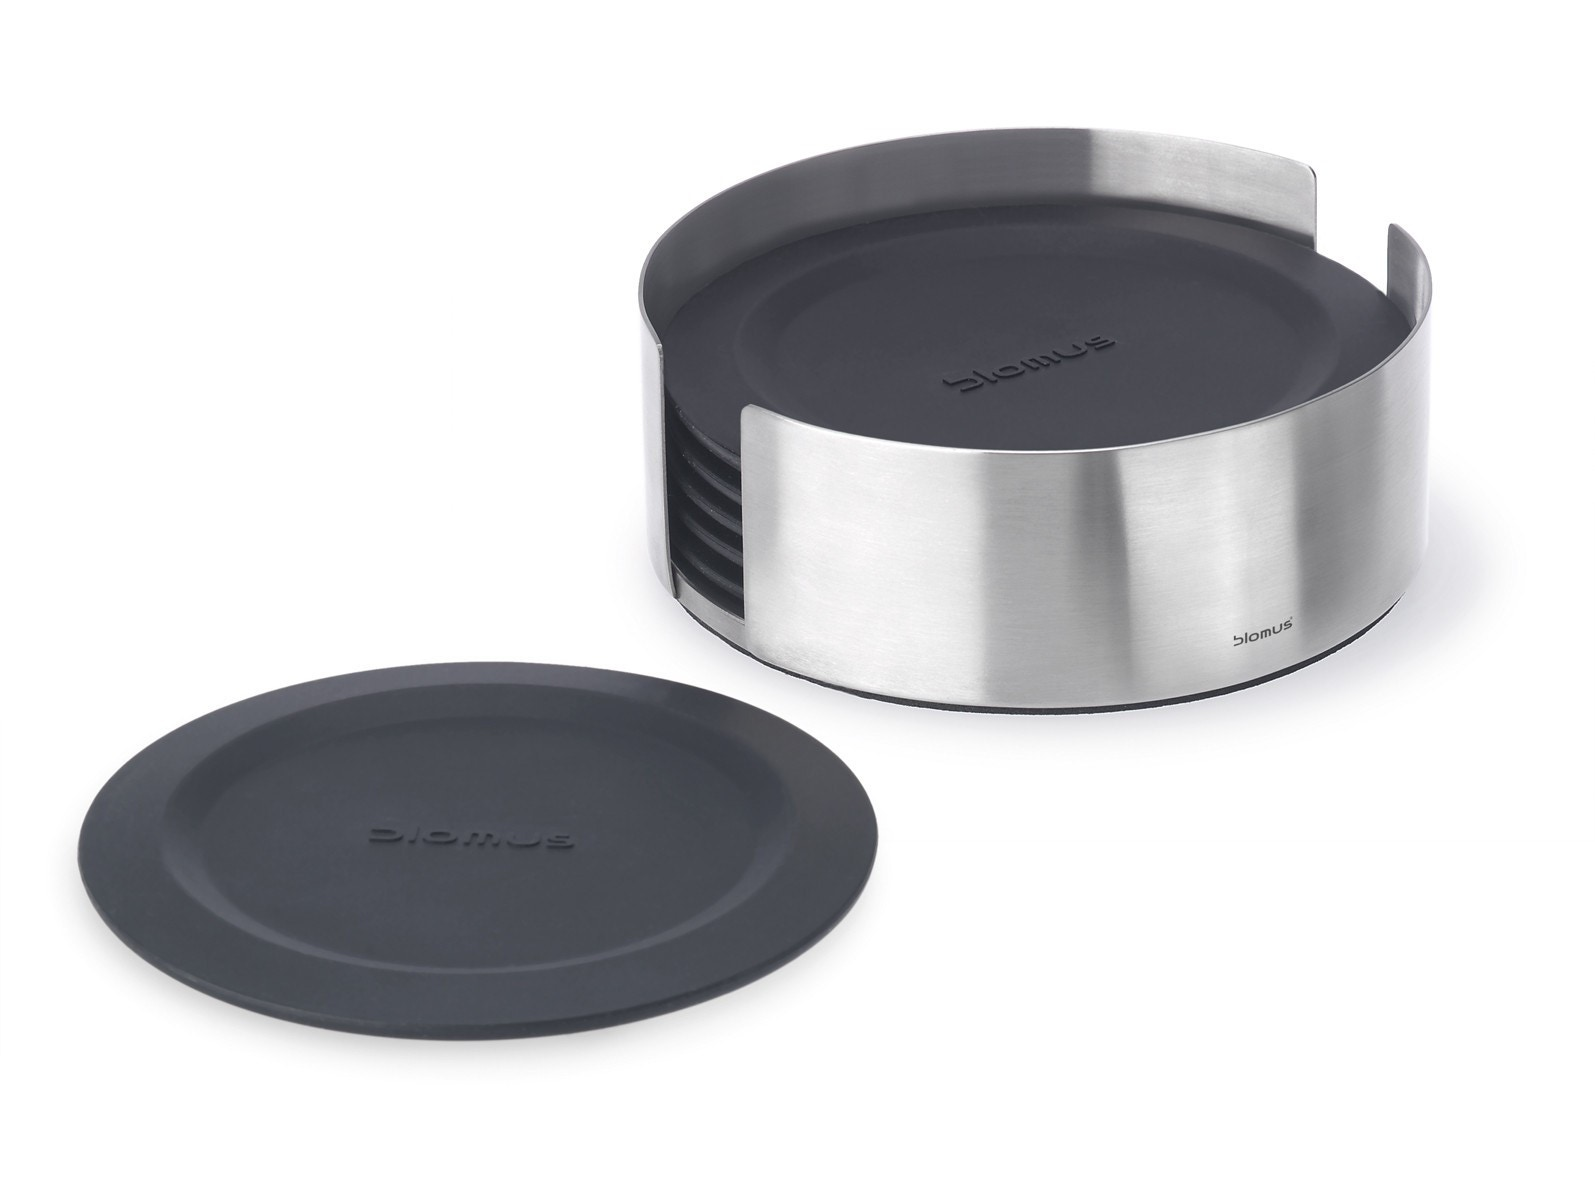 Blomus Lareto Coasters (6 Piece Set)